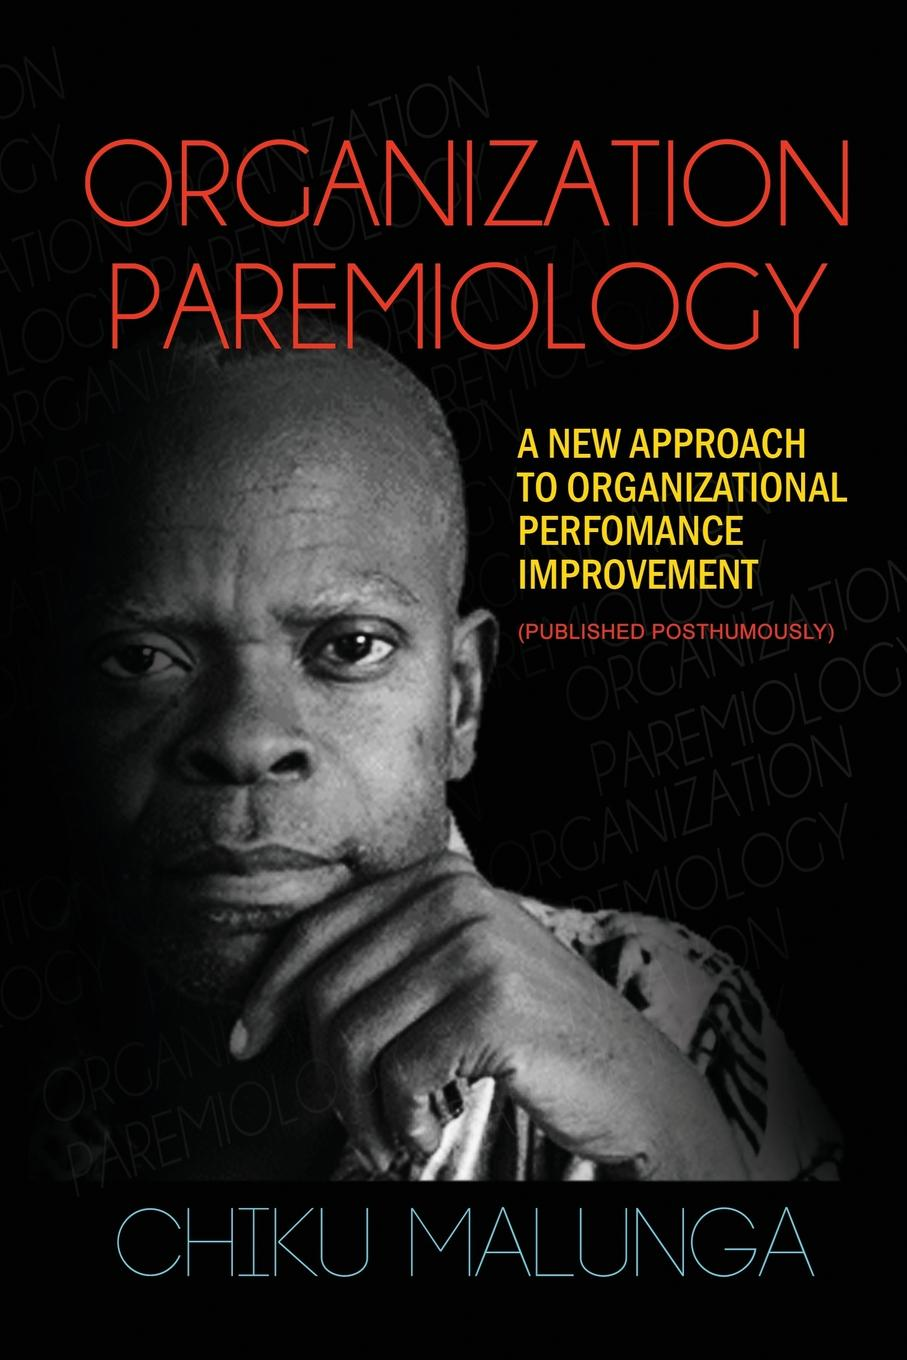 Organization Paremiology. A New Approach to Organizational Performance Improvement Organization Paremiology: A New Approach to Organizational...